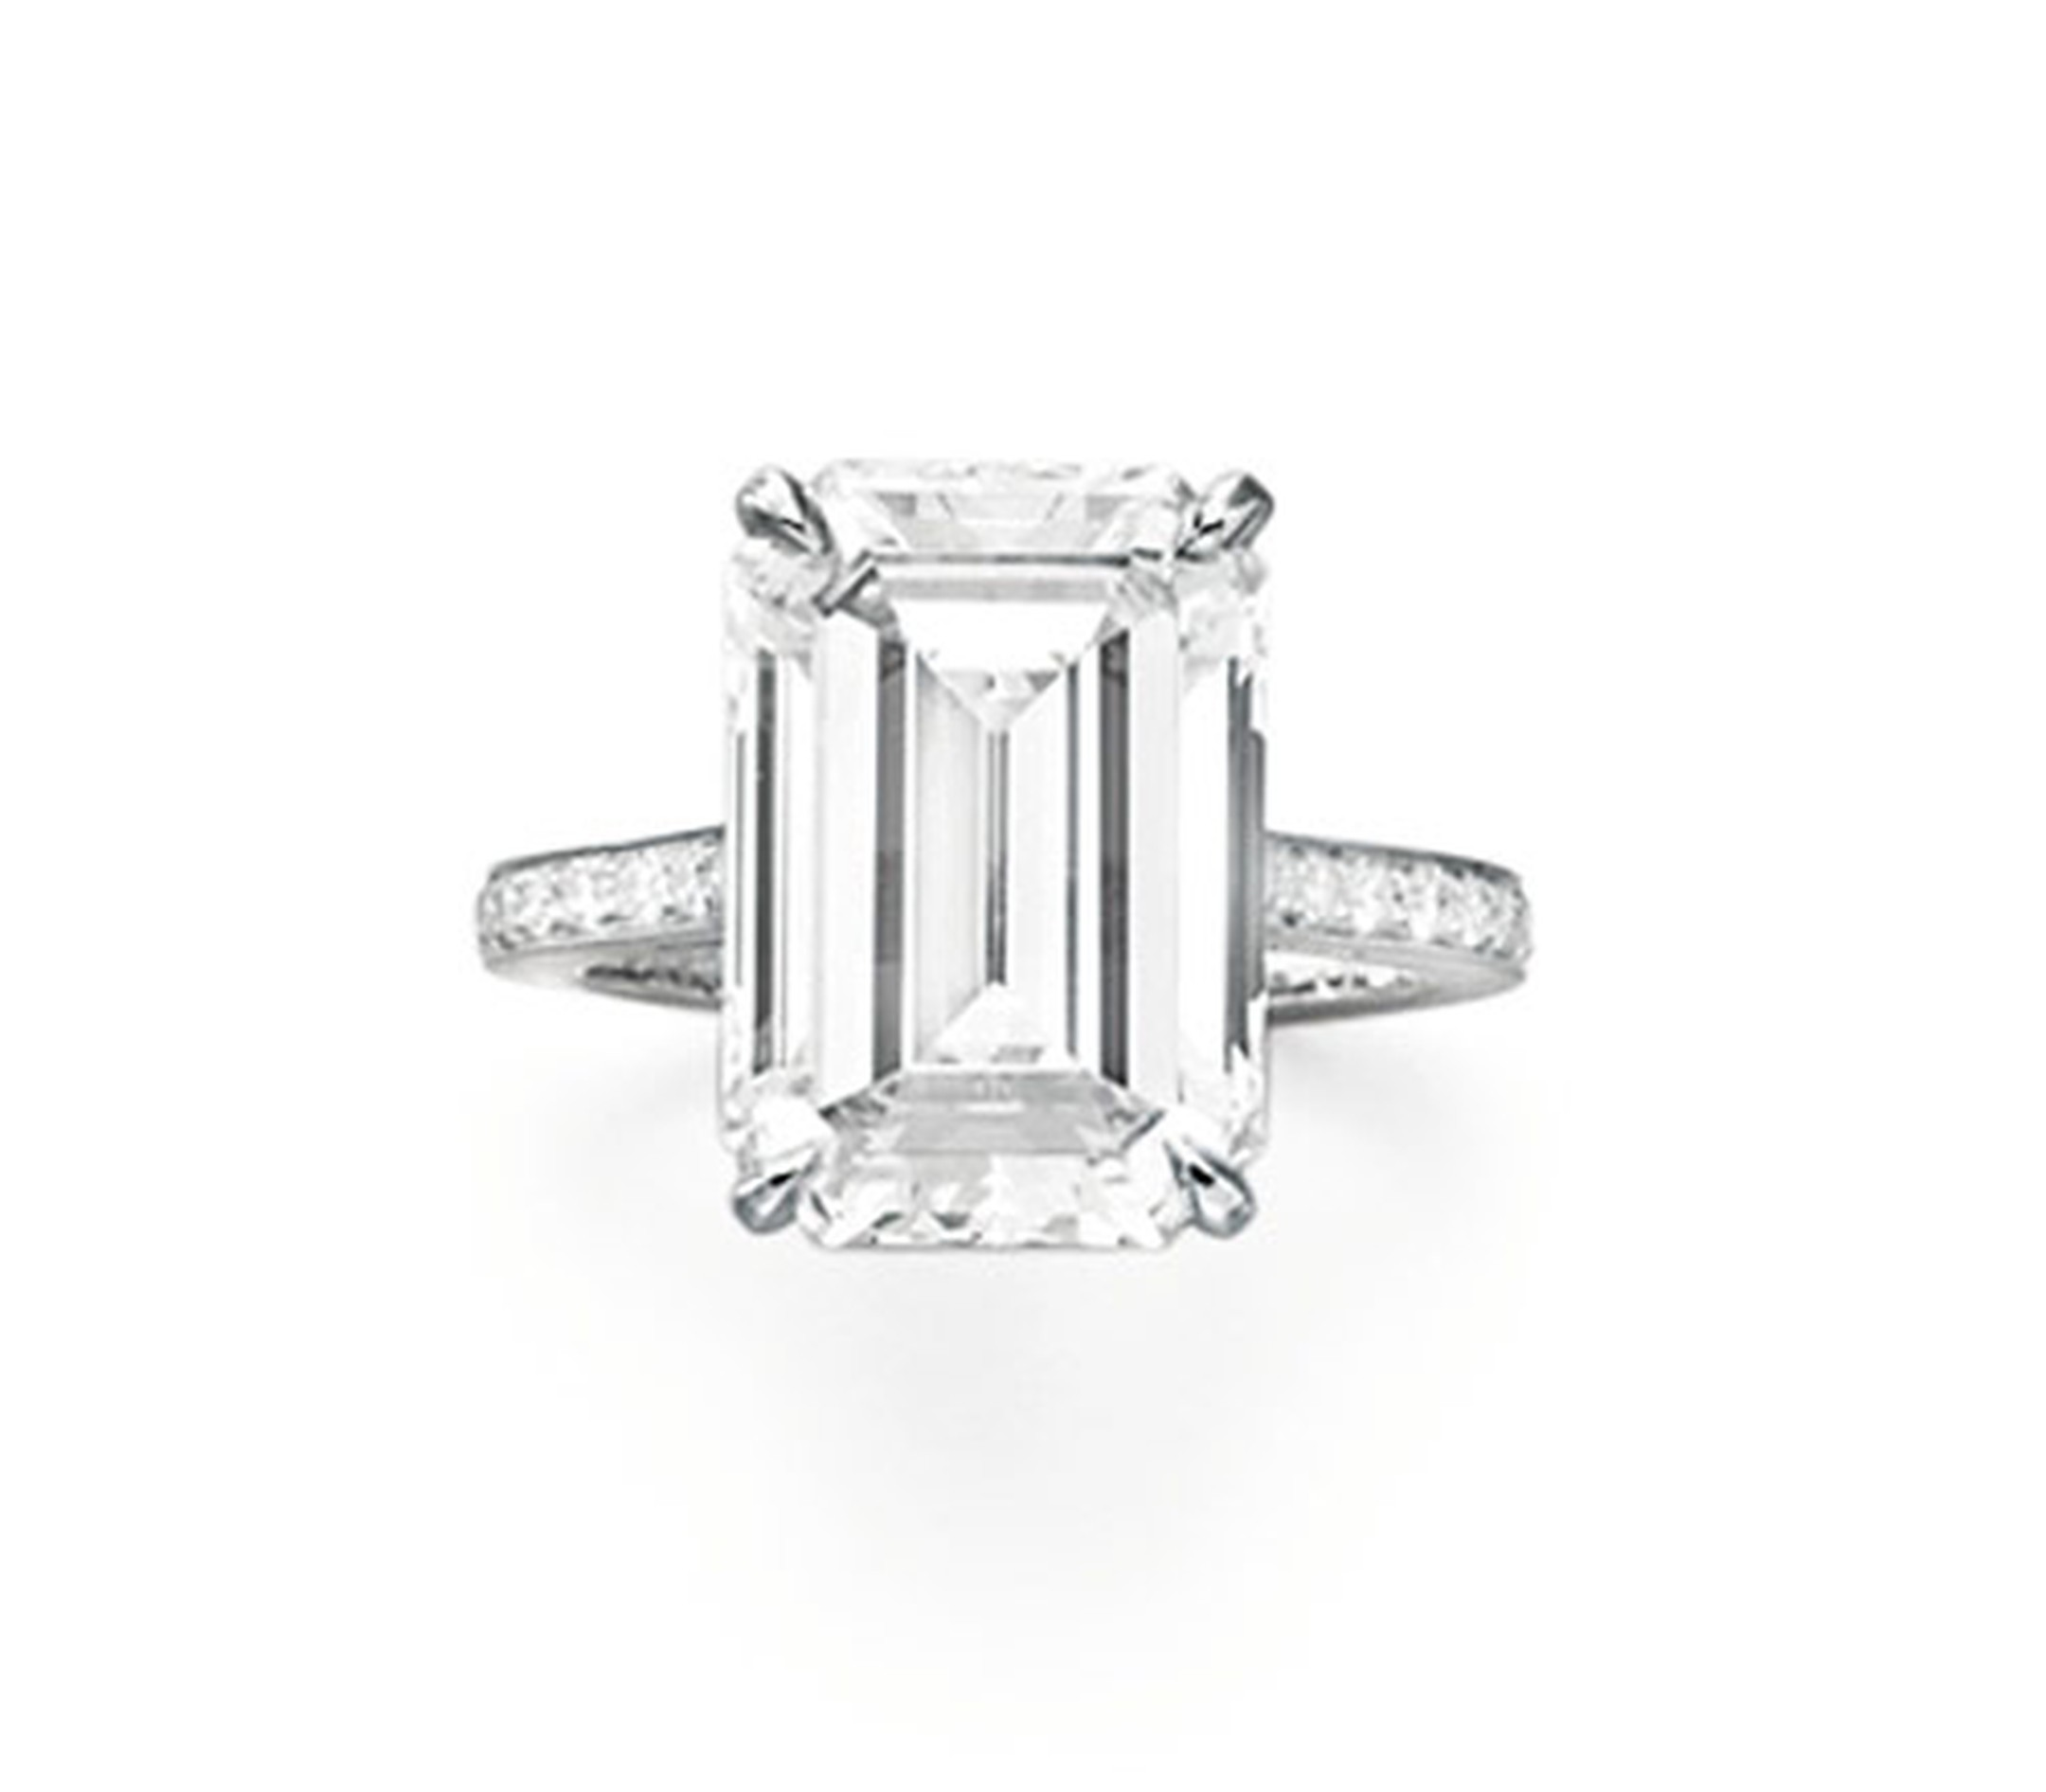 Christies-Rectangular-Cut-Diamond-Ring